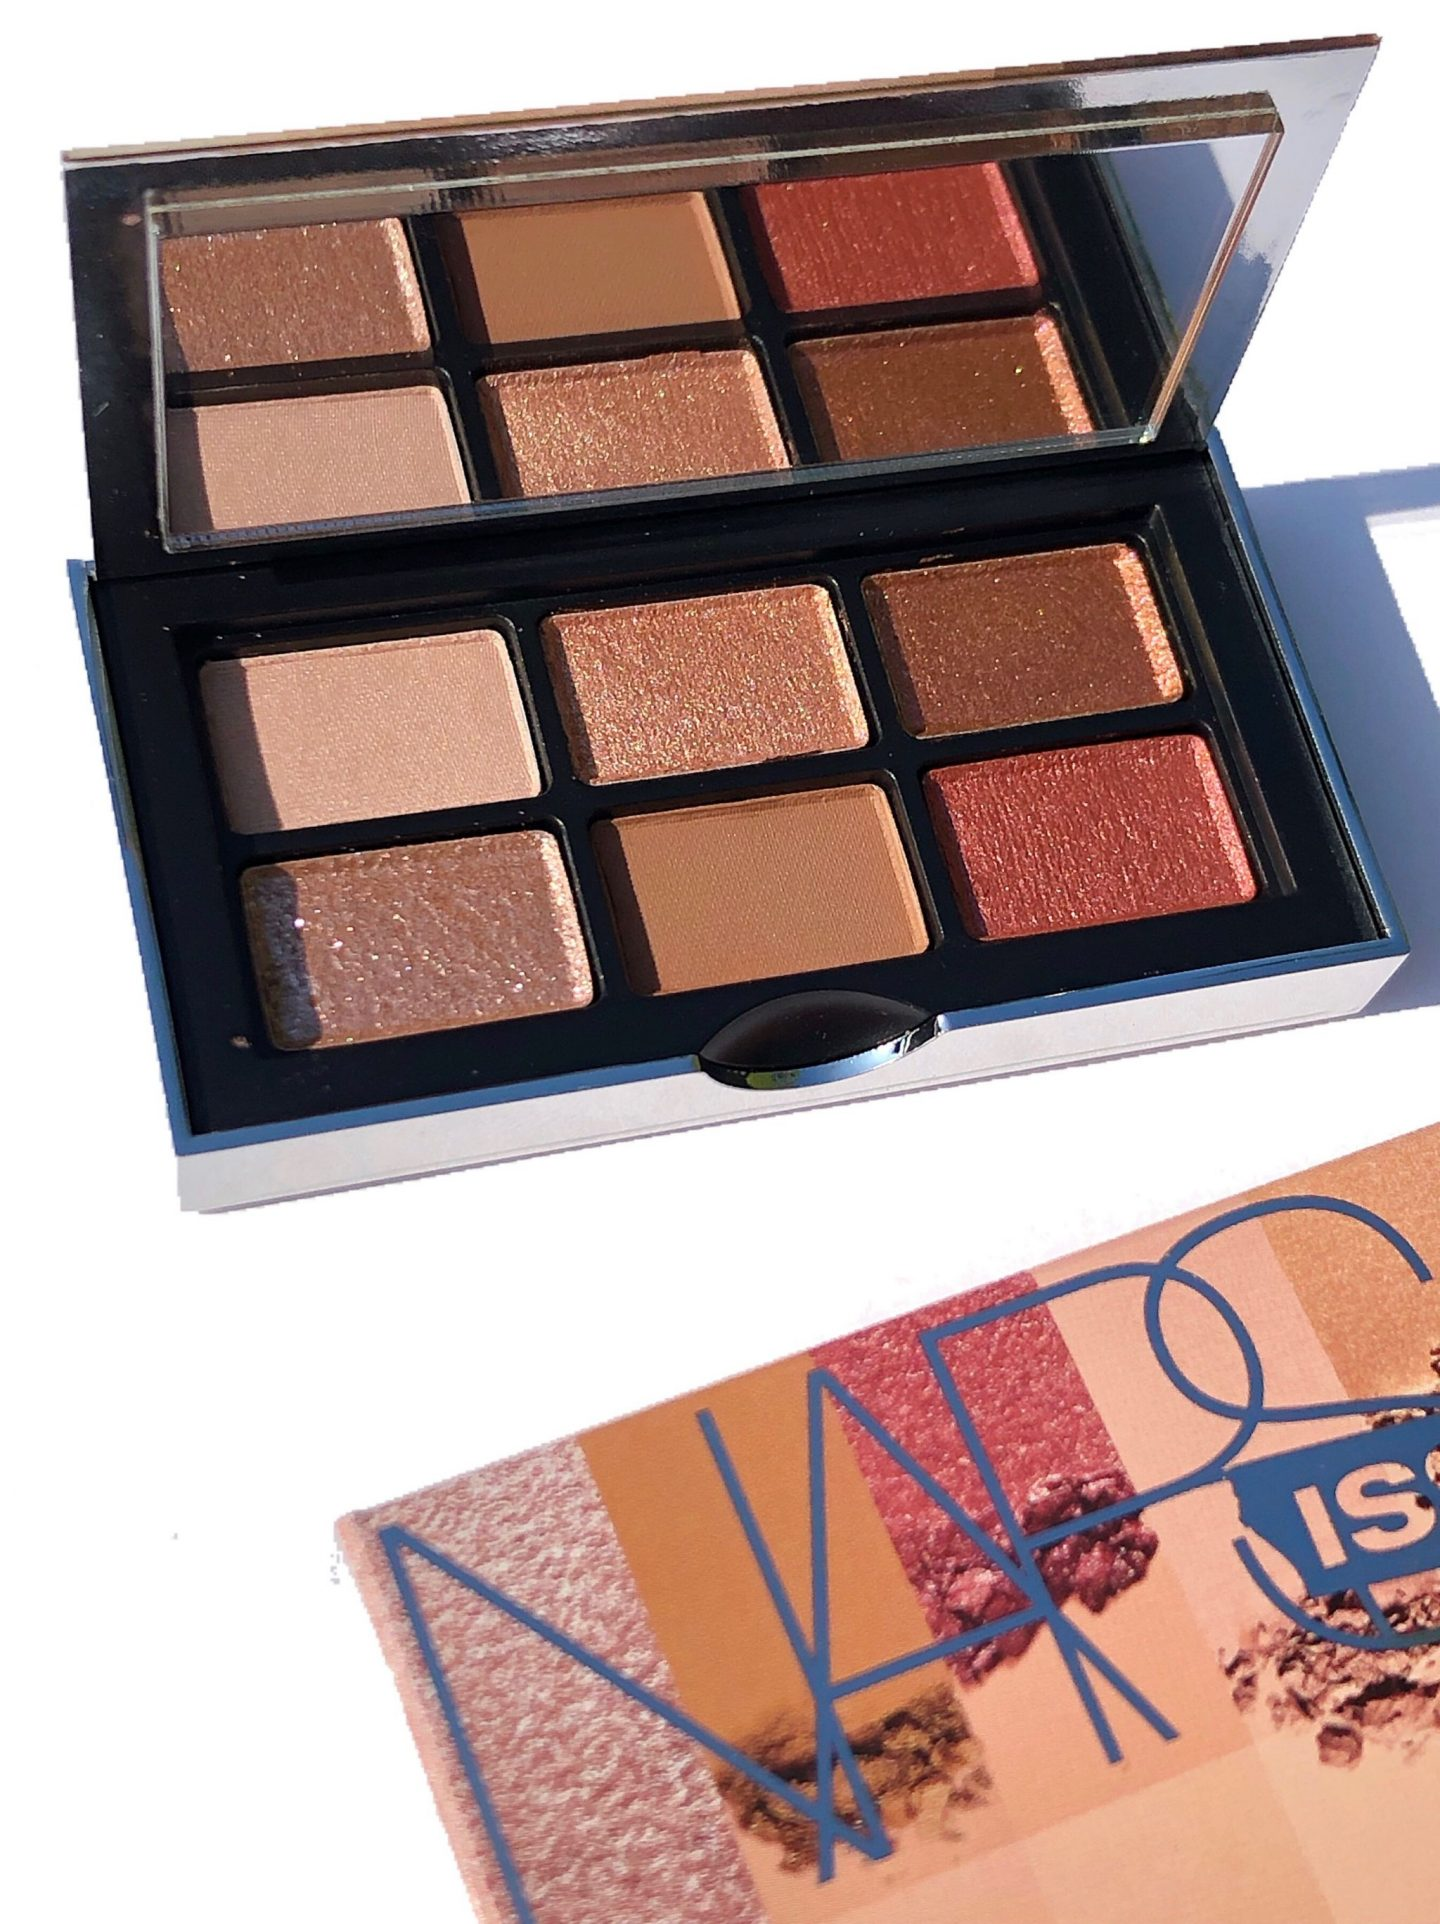 New NARS Wanted Mini Eyeshadow Palette & Oil Infused Lip Tints for Summer